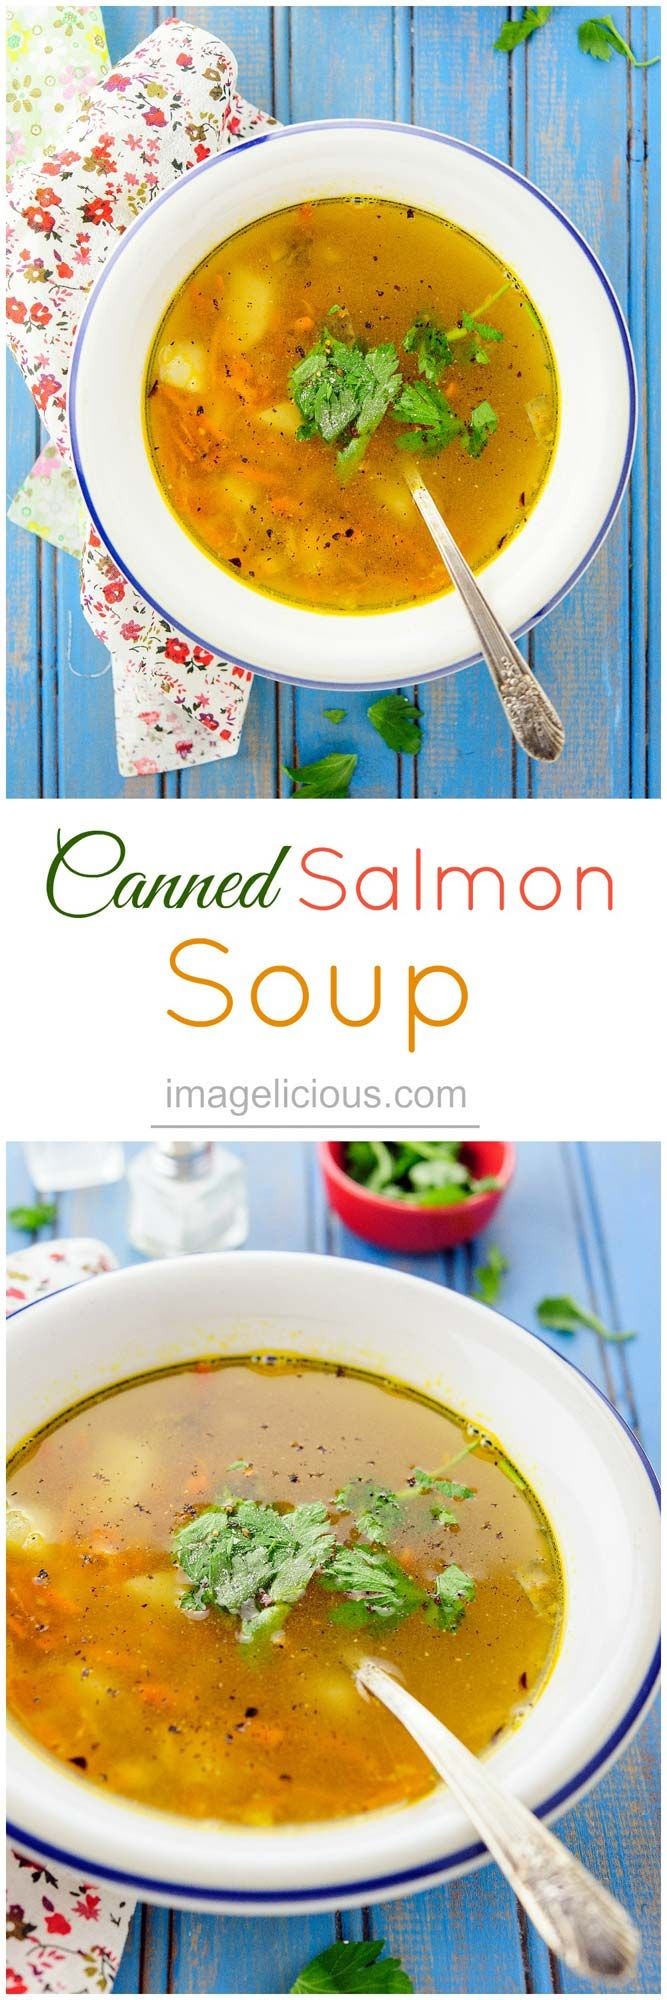 quick, easy, and affordable Canned Salmon Soup, it only takes 20 minutes to make, tastes delicious, healthy, and you have already have all the ingredients in your pantry